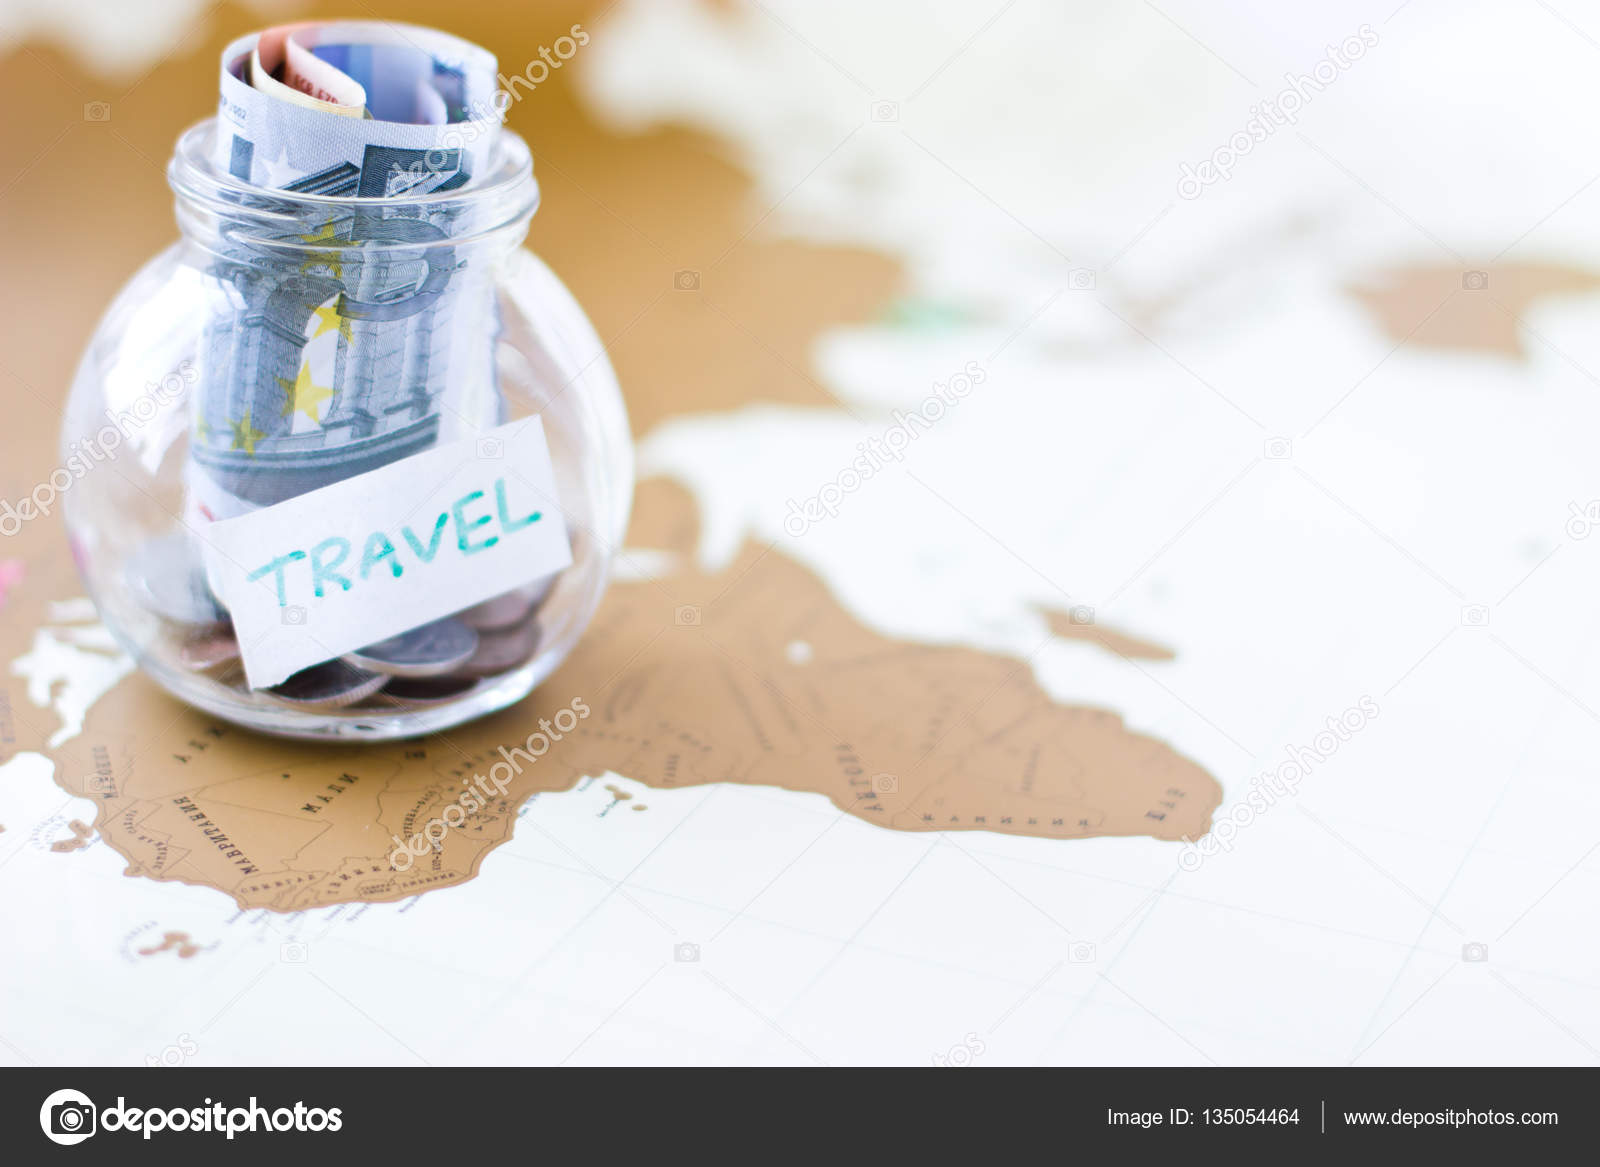 Travel budget vacation money savings in a glass jar on world m travel budget vacation money savings in a glass jar on world map collecting money for travel photo by ferkhova gumiabroncs Choice Image